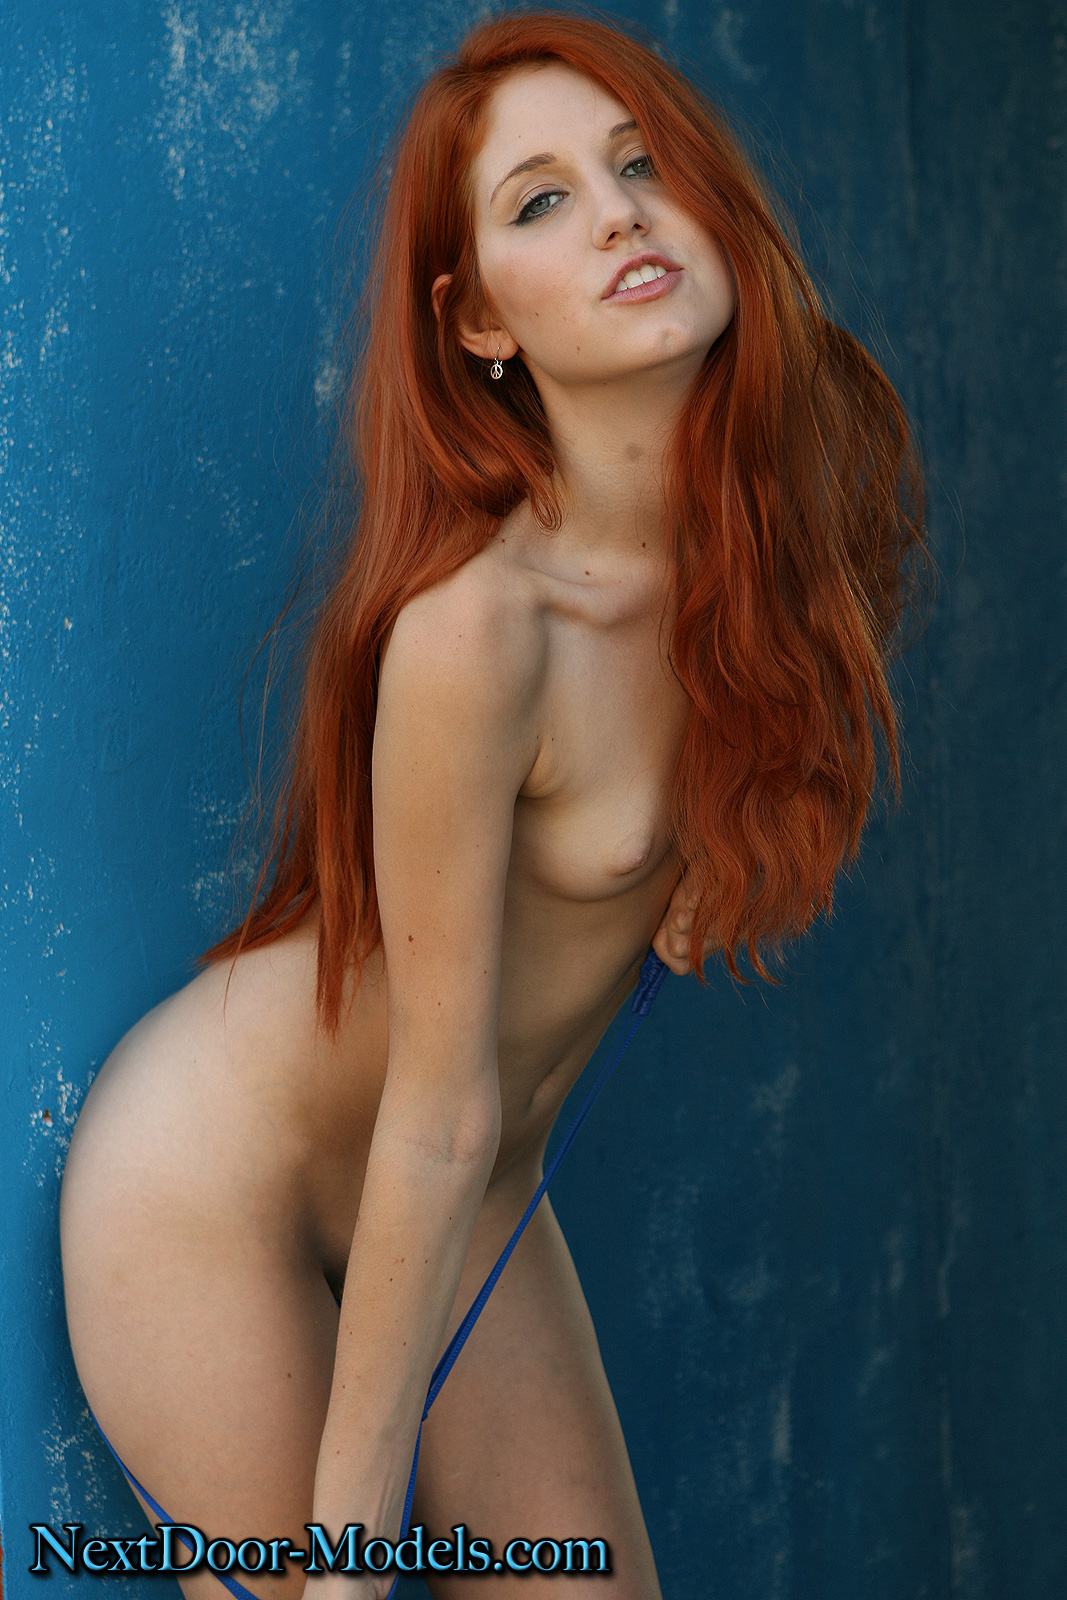 Remarkable, valuable Naked sexy redhead girls and women good